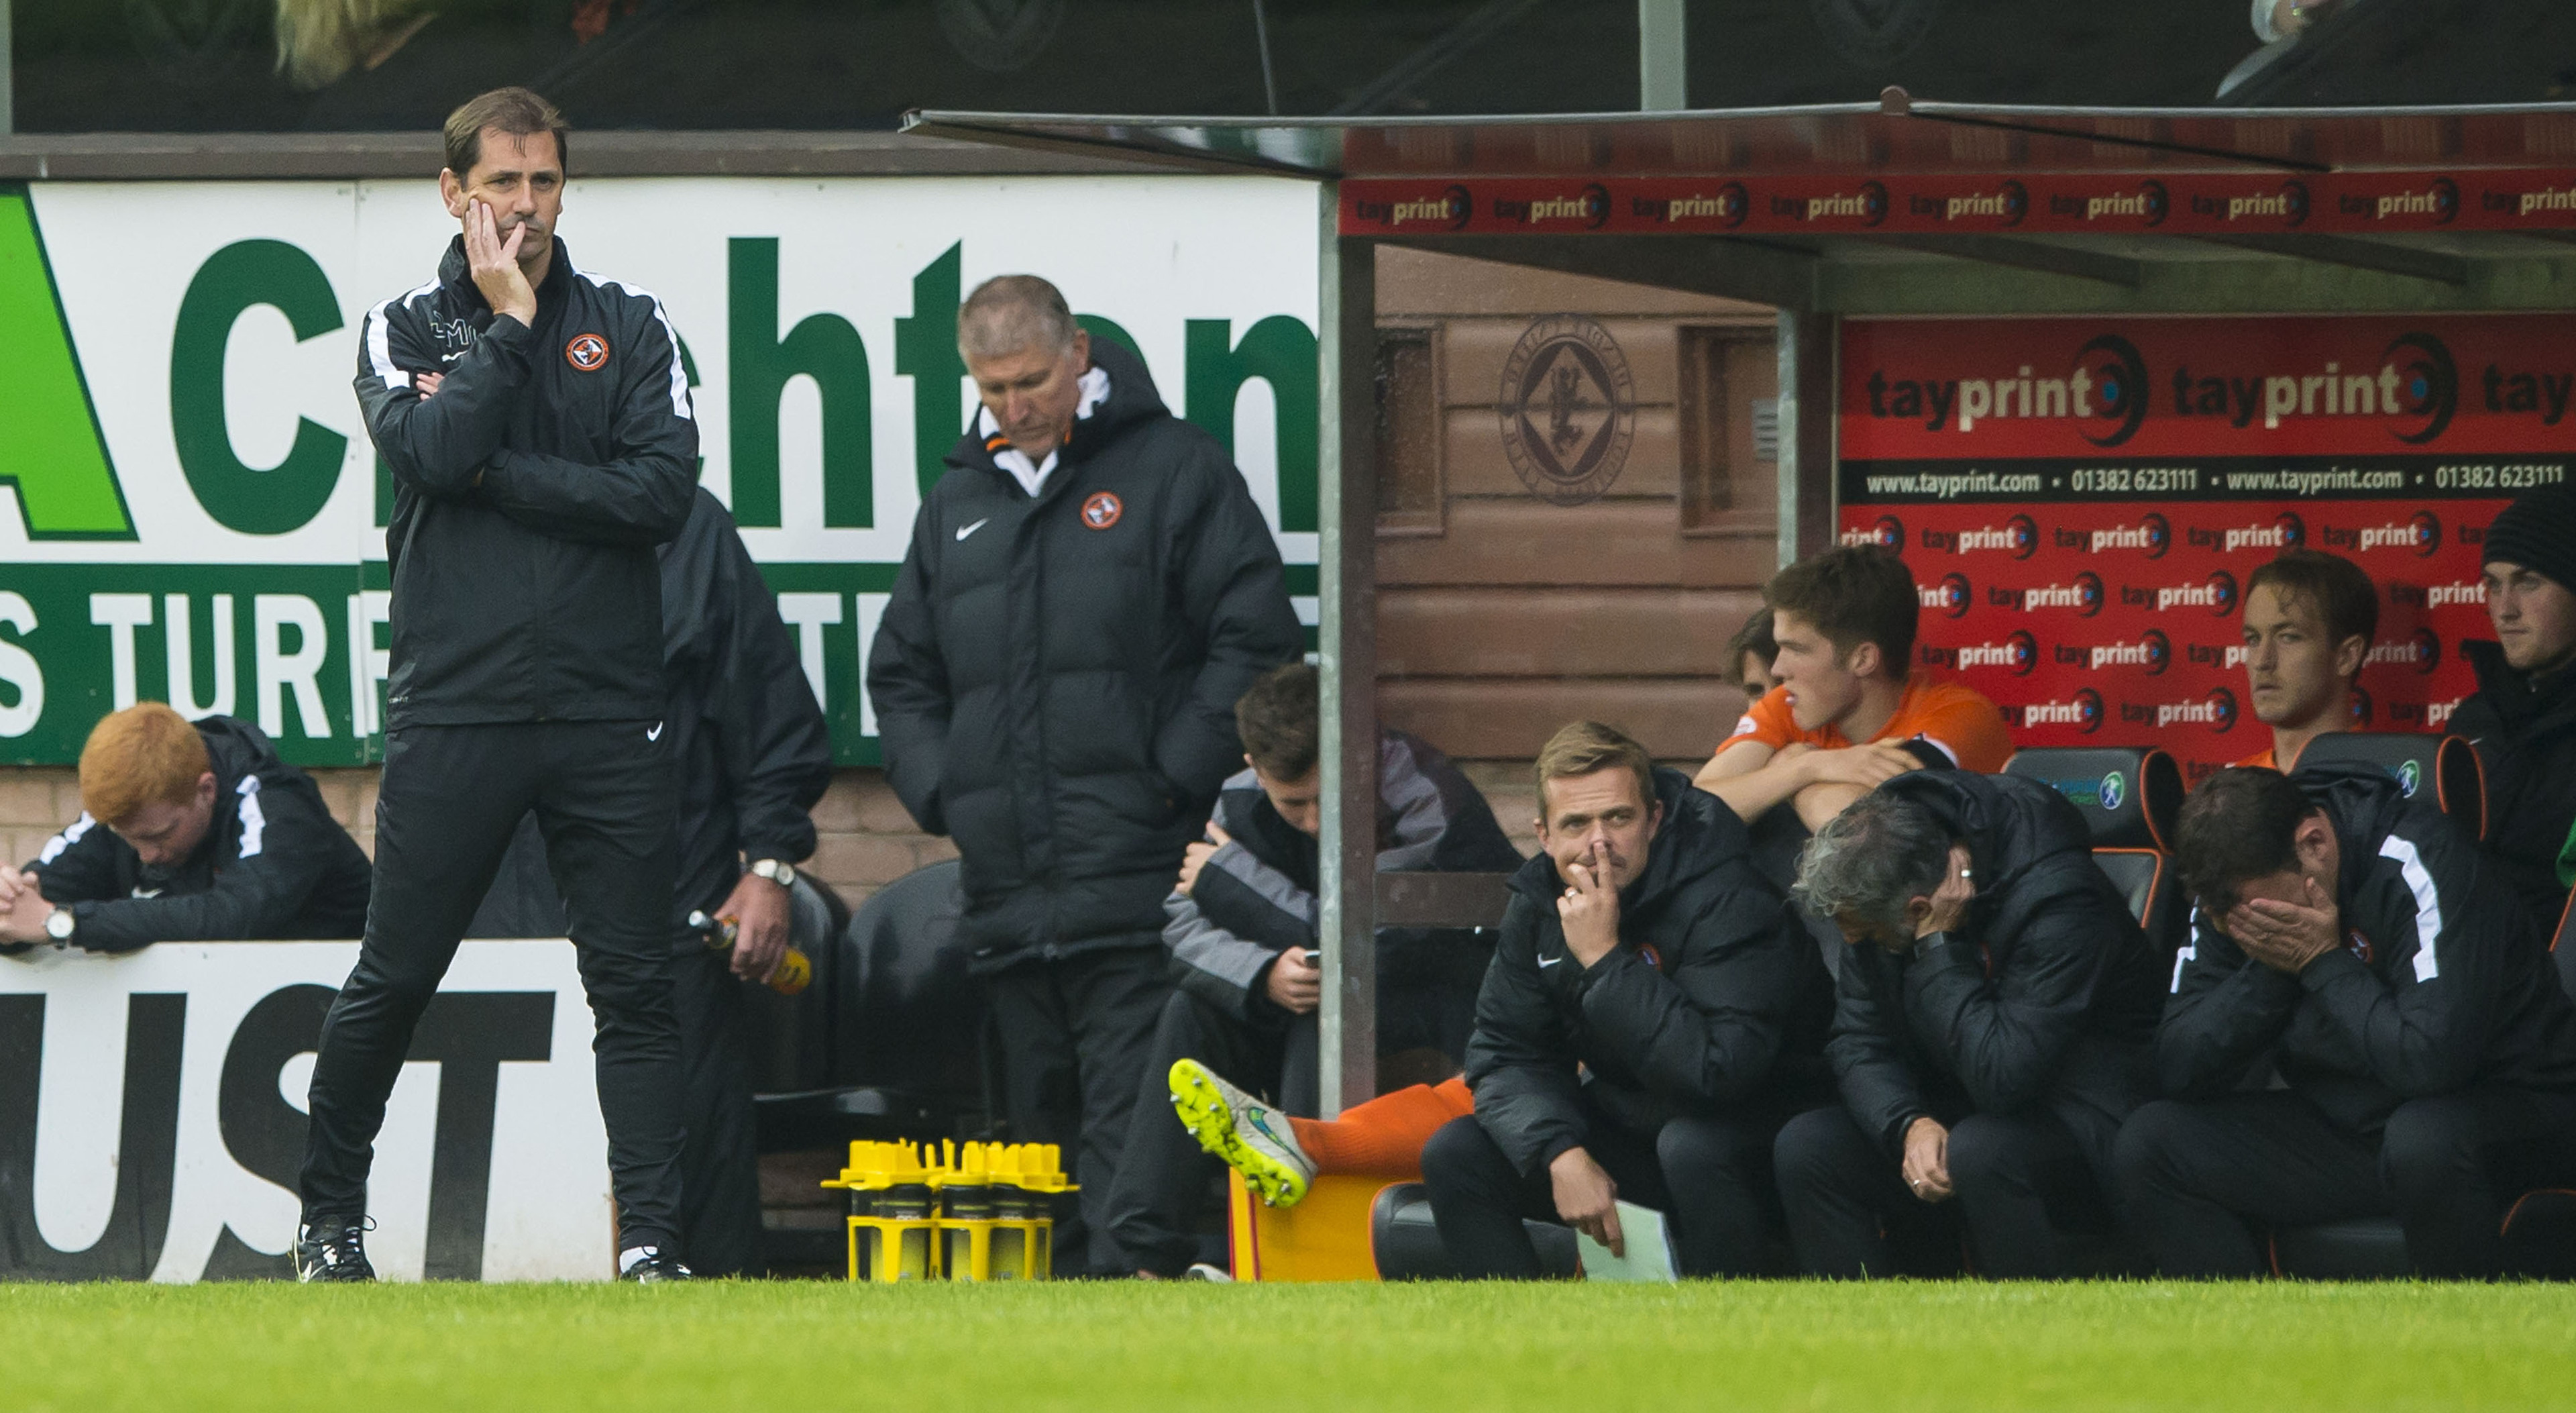 Dundee United boss Jackie McNamara (left) and his coaching staff suffered in the dugout as Killie took all three points at Tannadice.